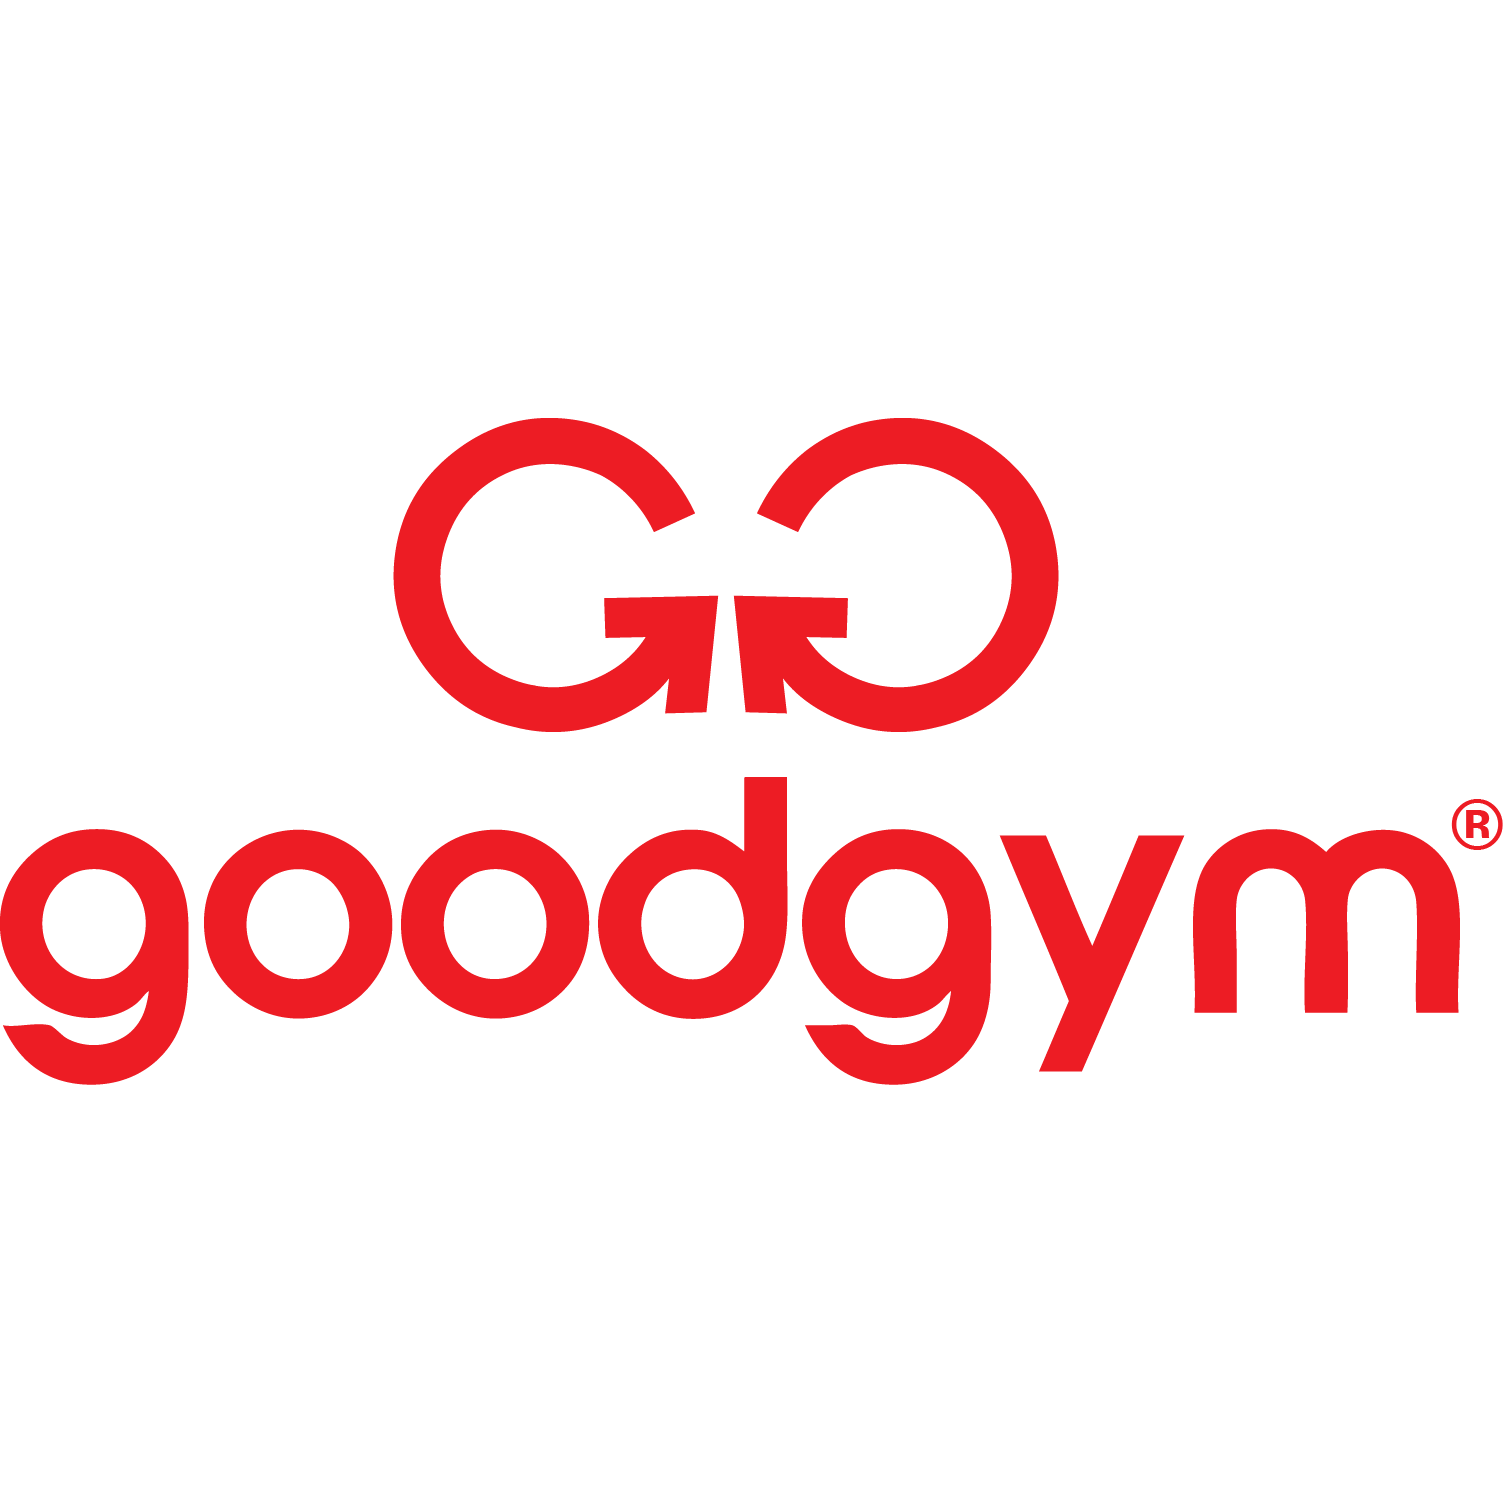 The Good Gym is the Best!